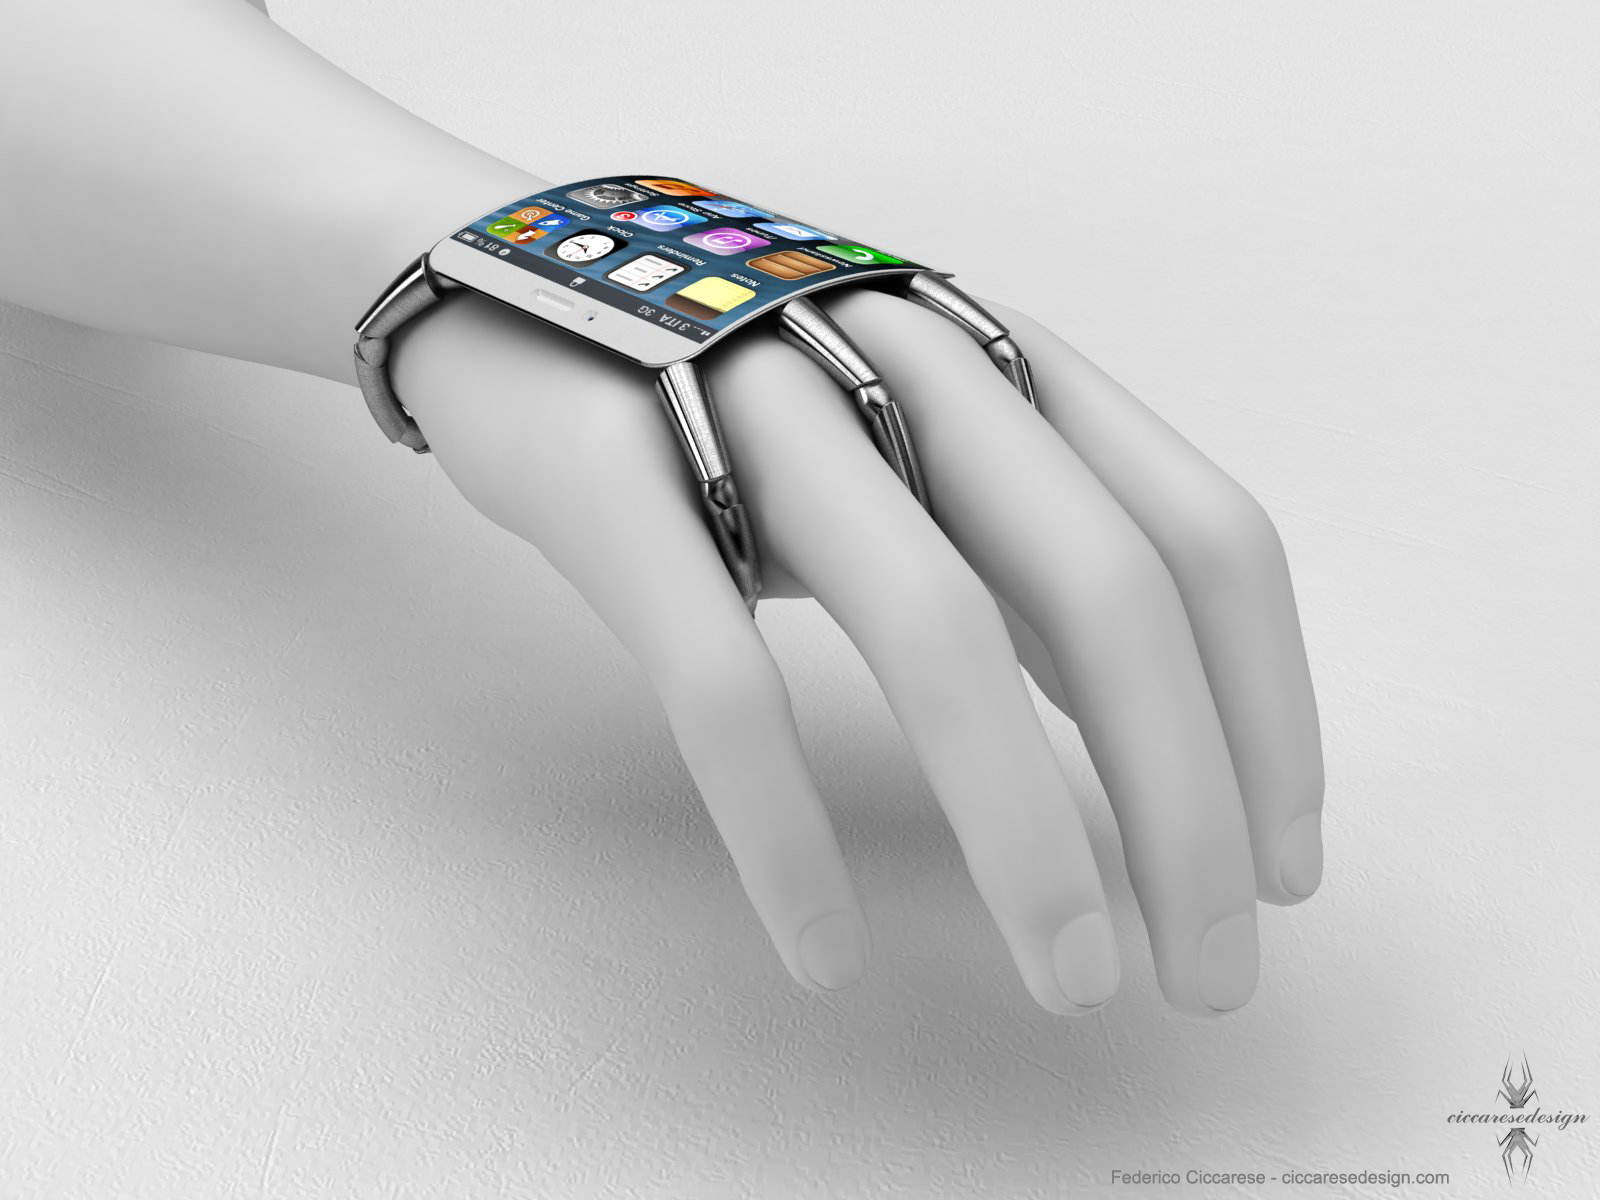 Wearable Iphone 5 With Curved Glass Apple ConceptIphone 100000000000000000000000000000000000000000000000000000000000000000000000000000